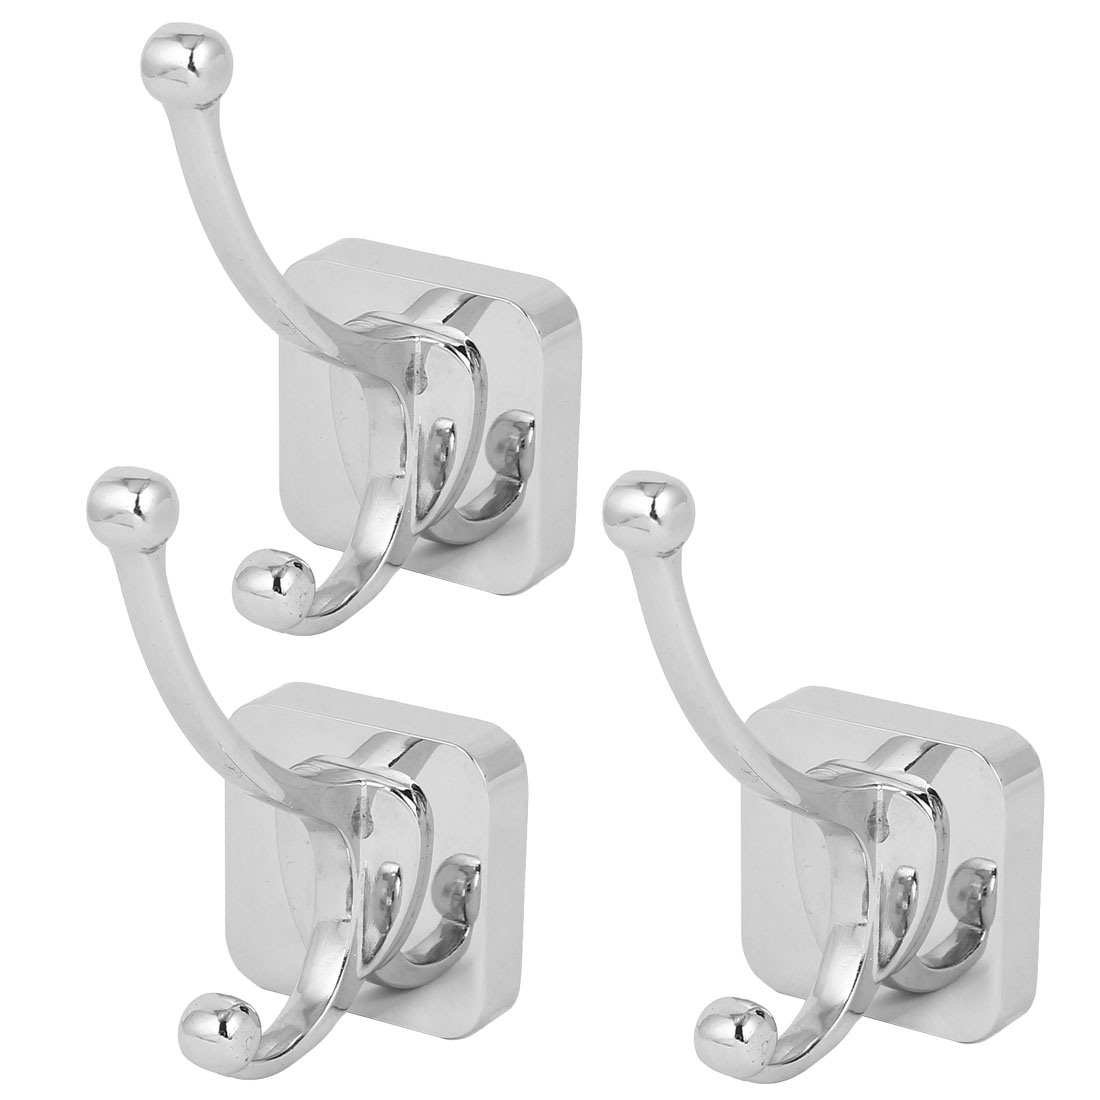 Bedroom Clothes Hanging Wall Mounted Zinc Alloy Chrome Plated Double Hanger Hook Silver Tone 3pcs